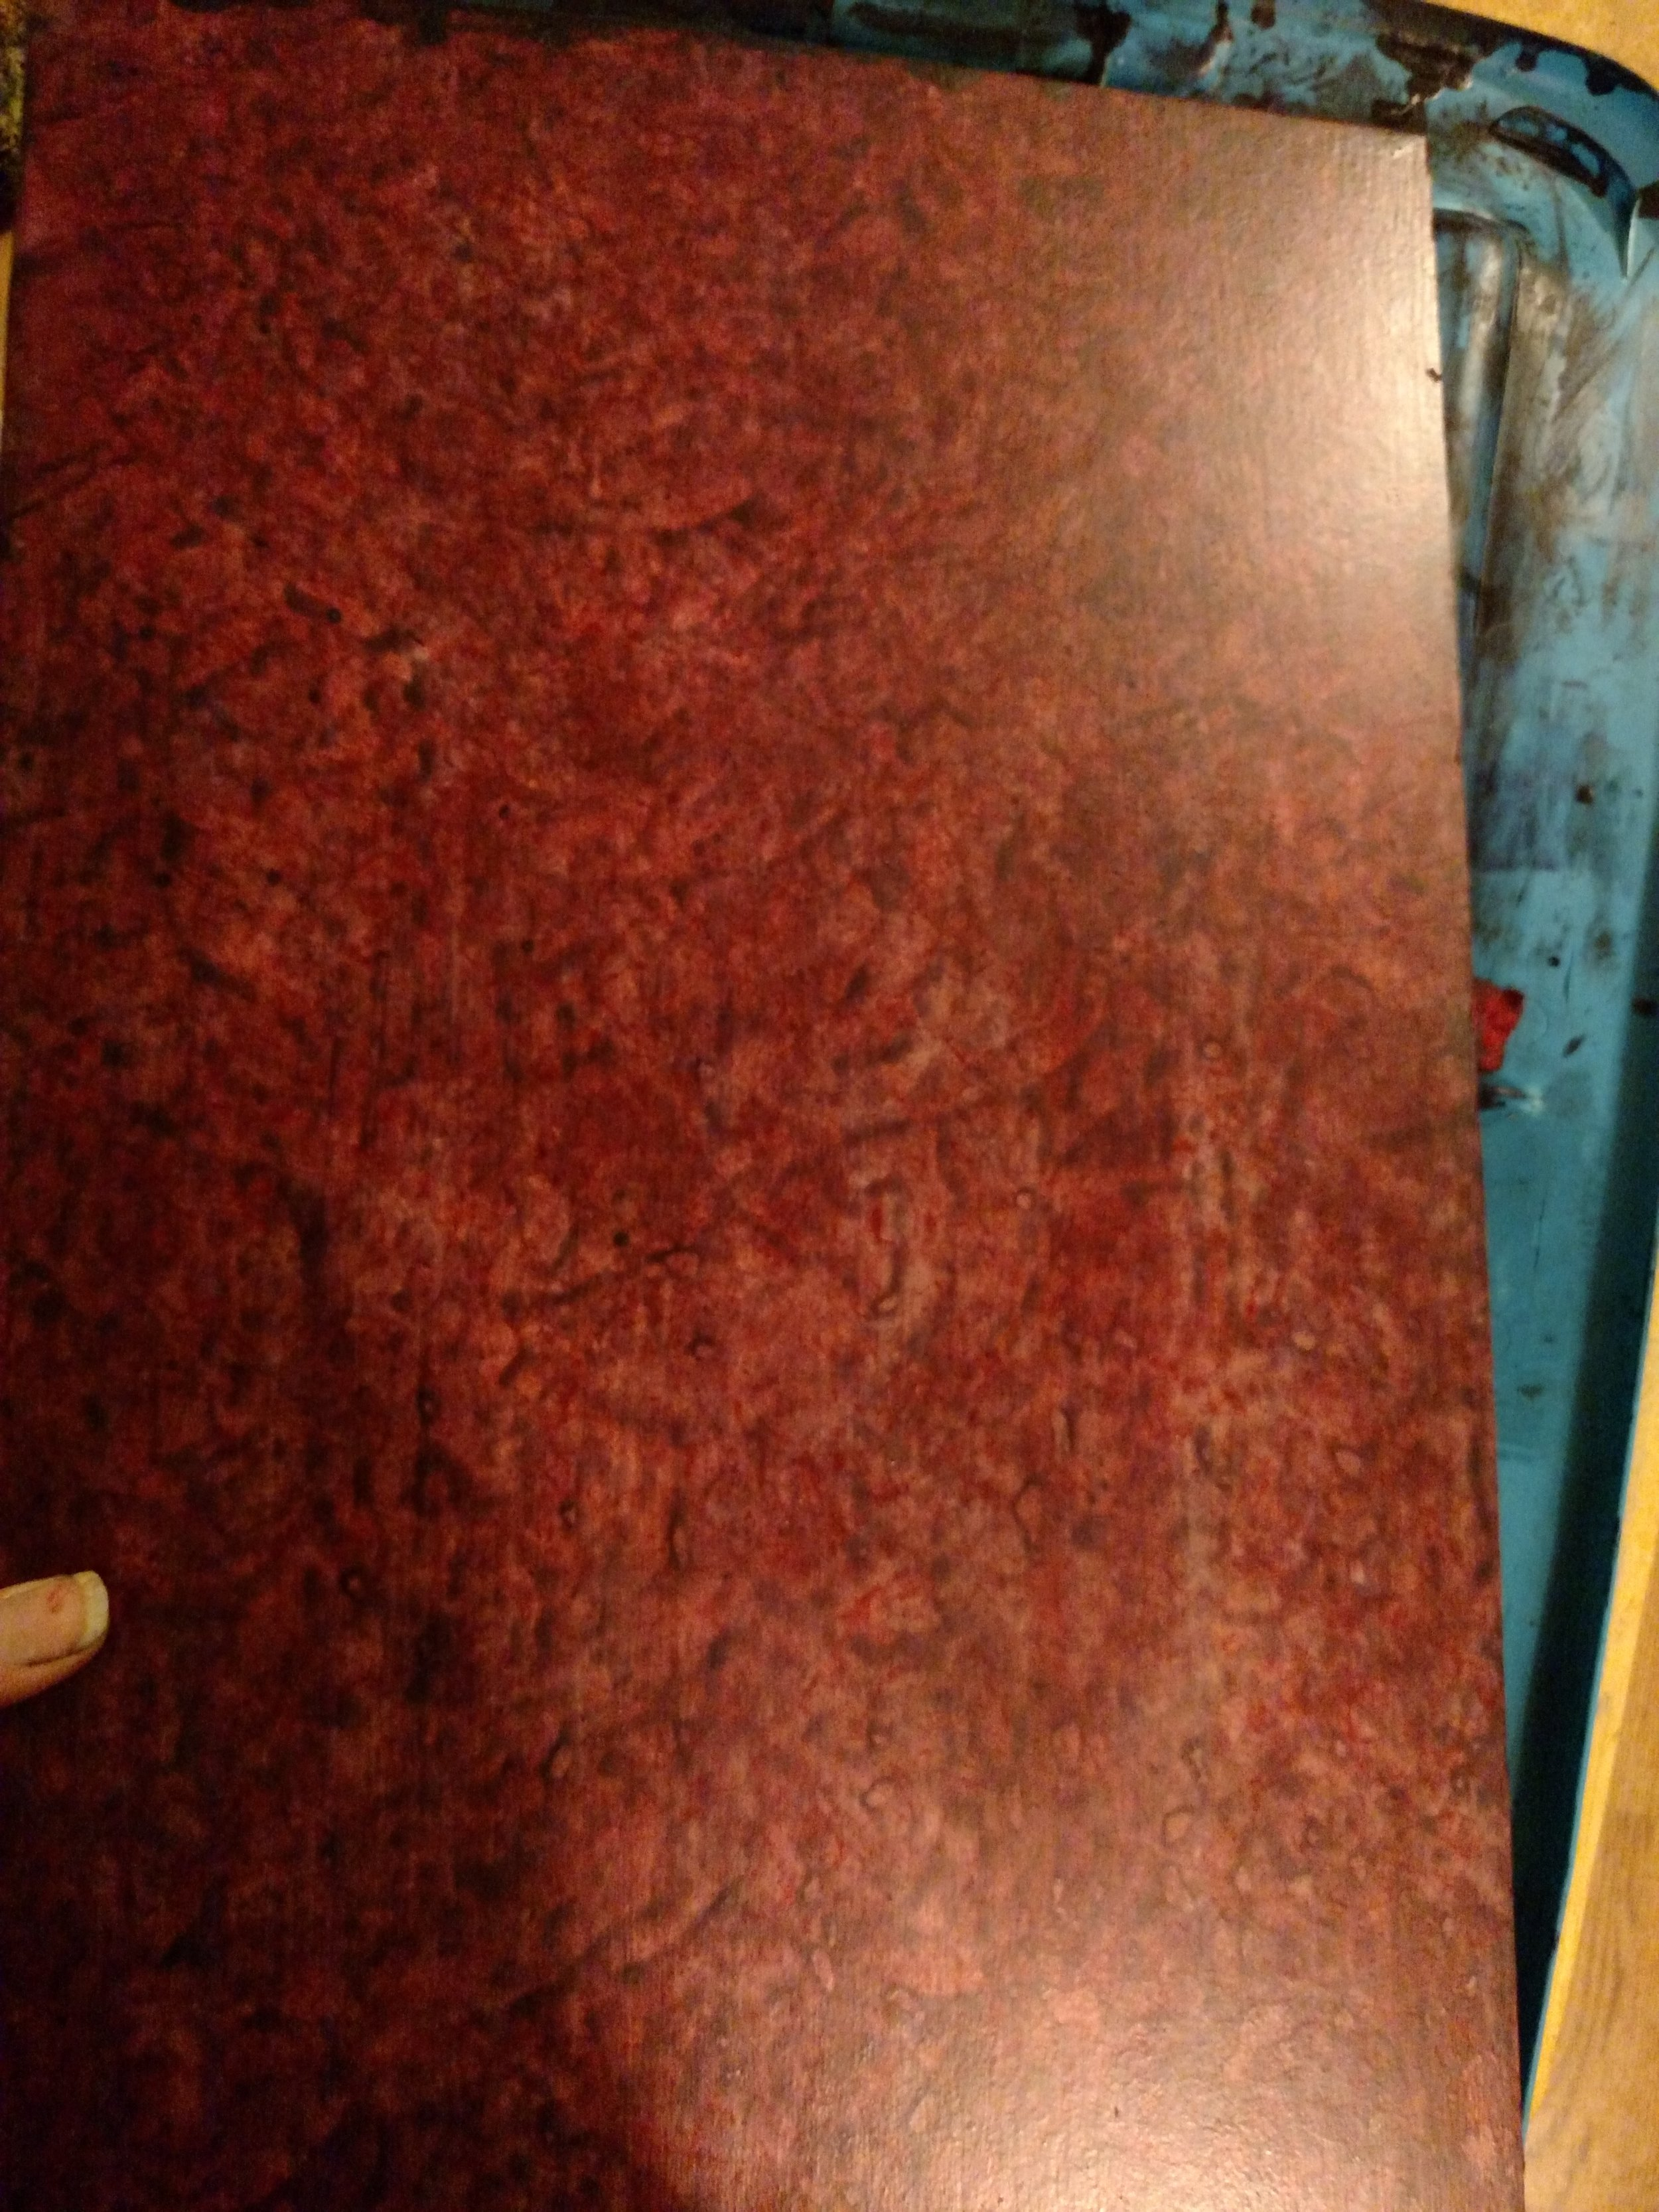 Gave the blood splatter pattern a red glaze to pull it all together. One last sanding and then a clear top coat.